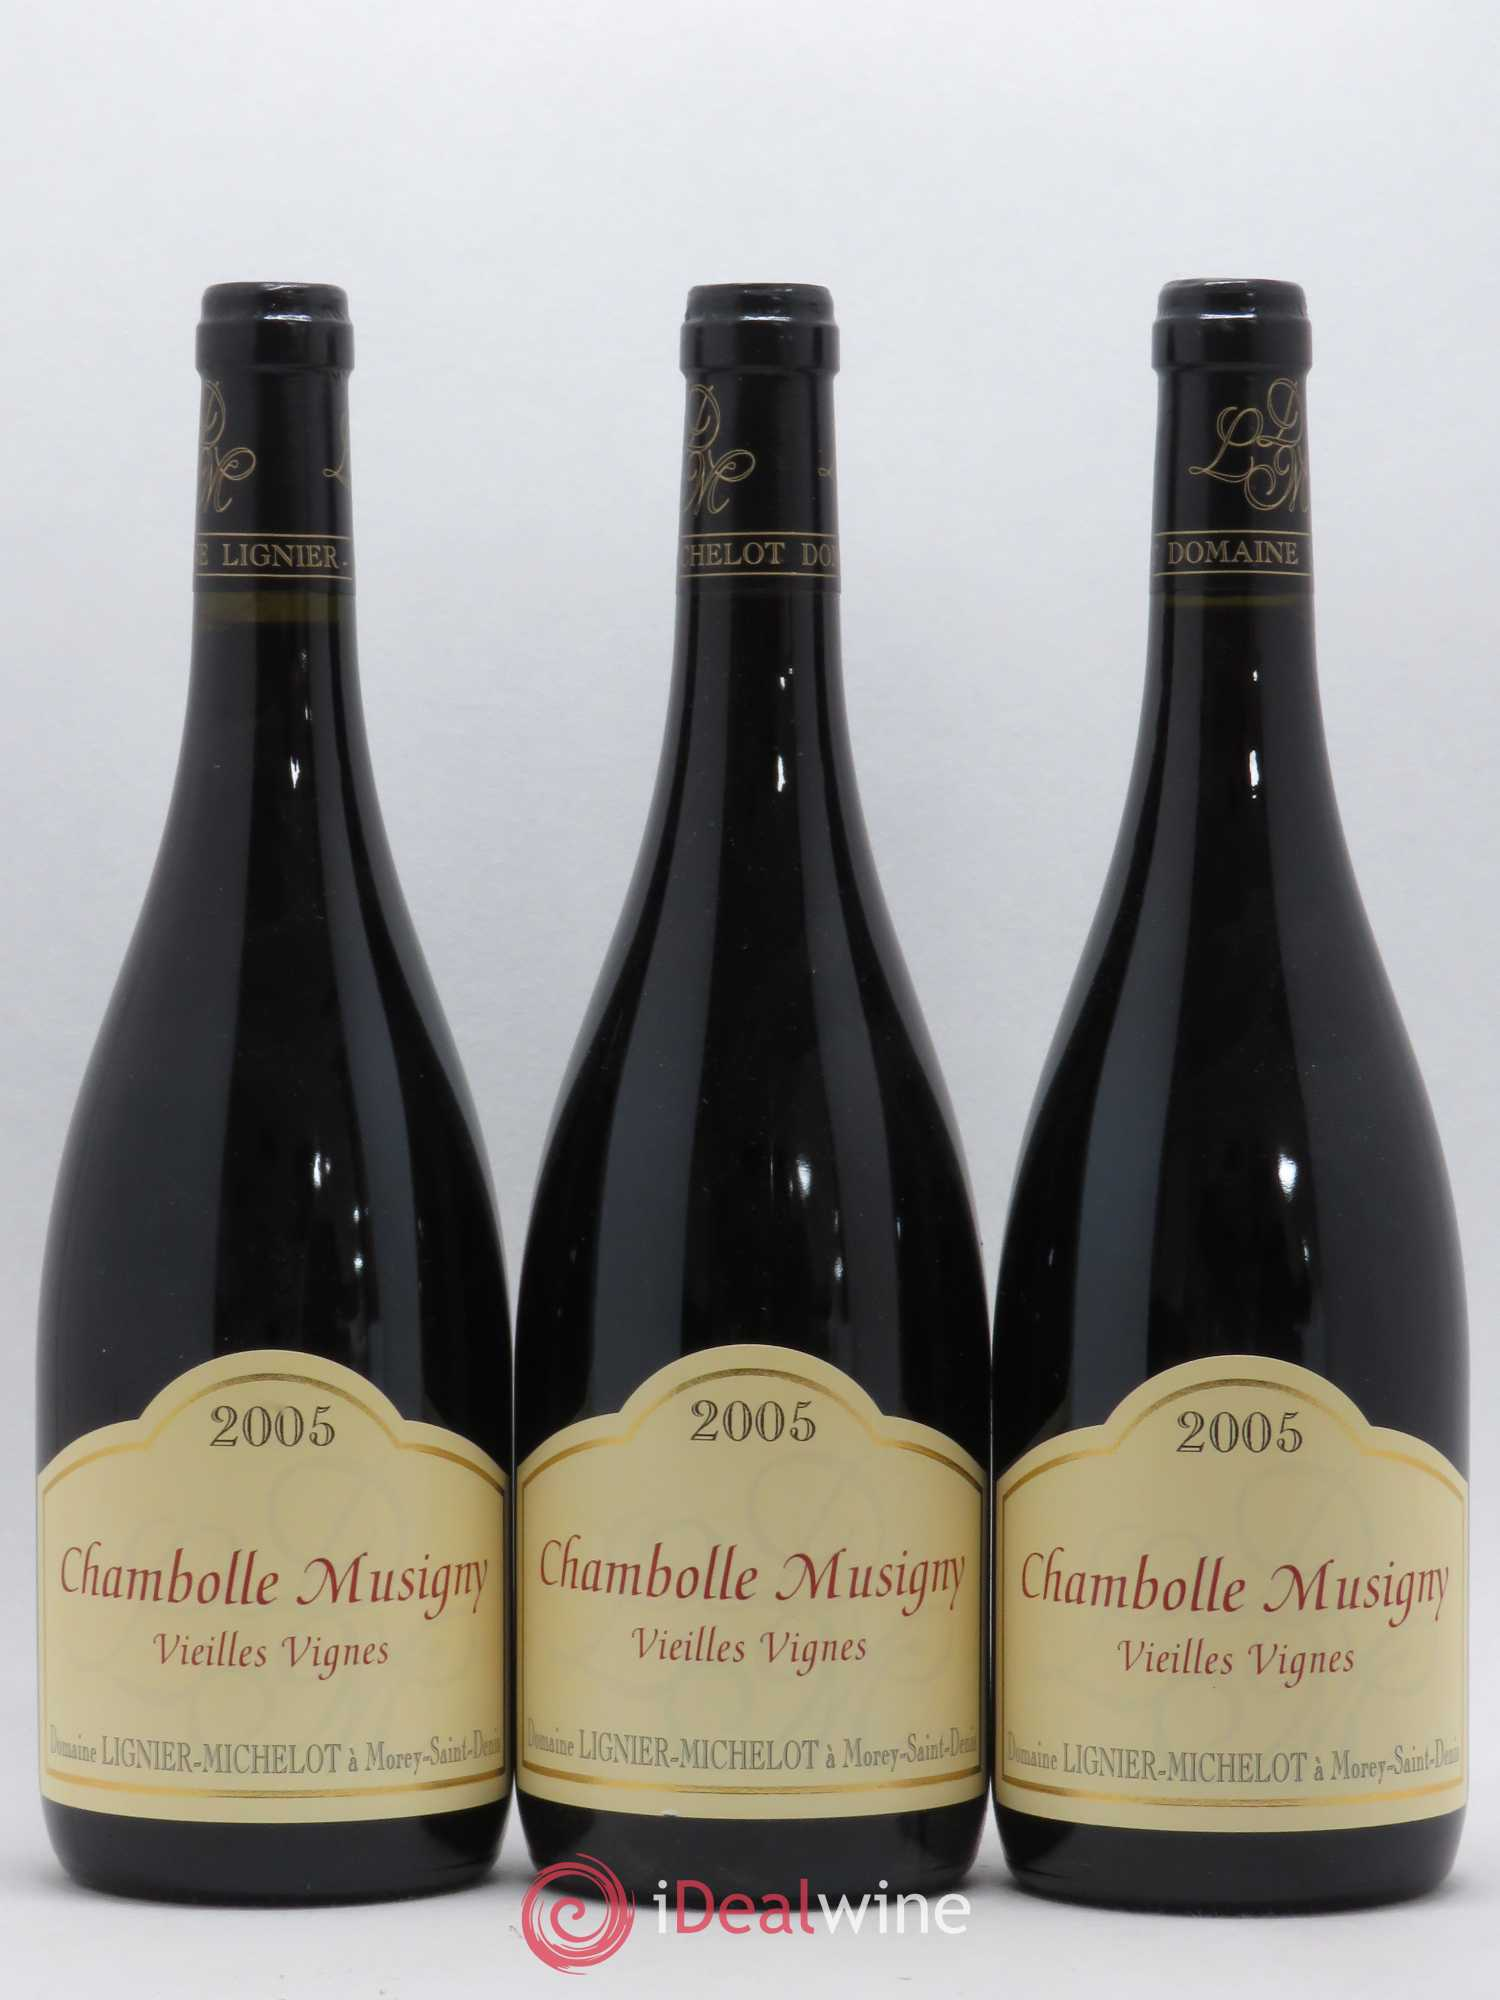 Chambolle-Musigny Vieilles vignes Lignier-Michelot (Domaine)  2005 - Lot of 3 Bottles